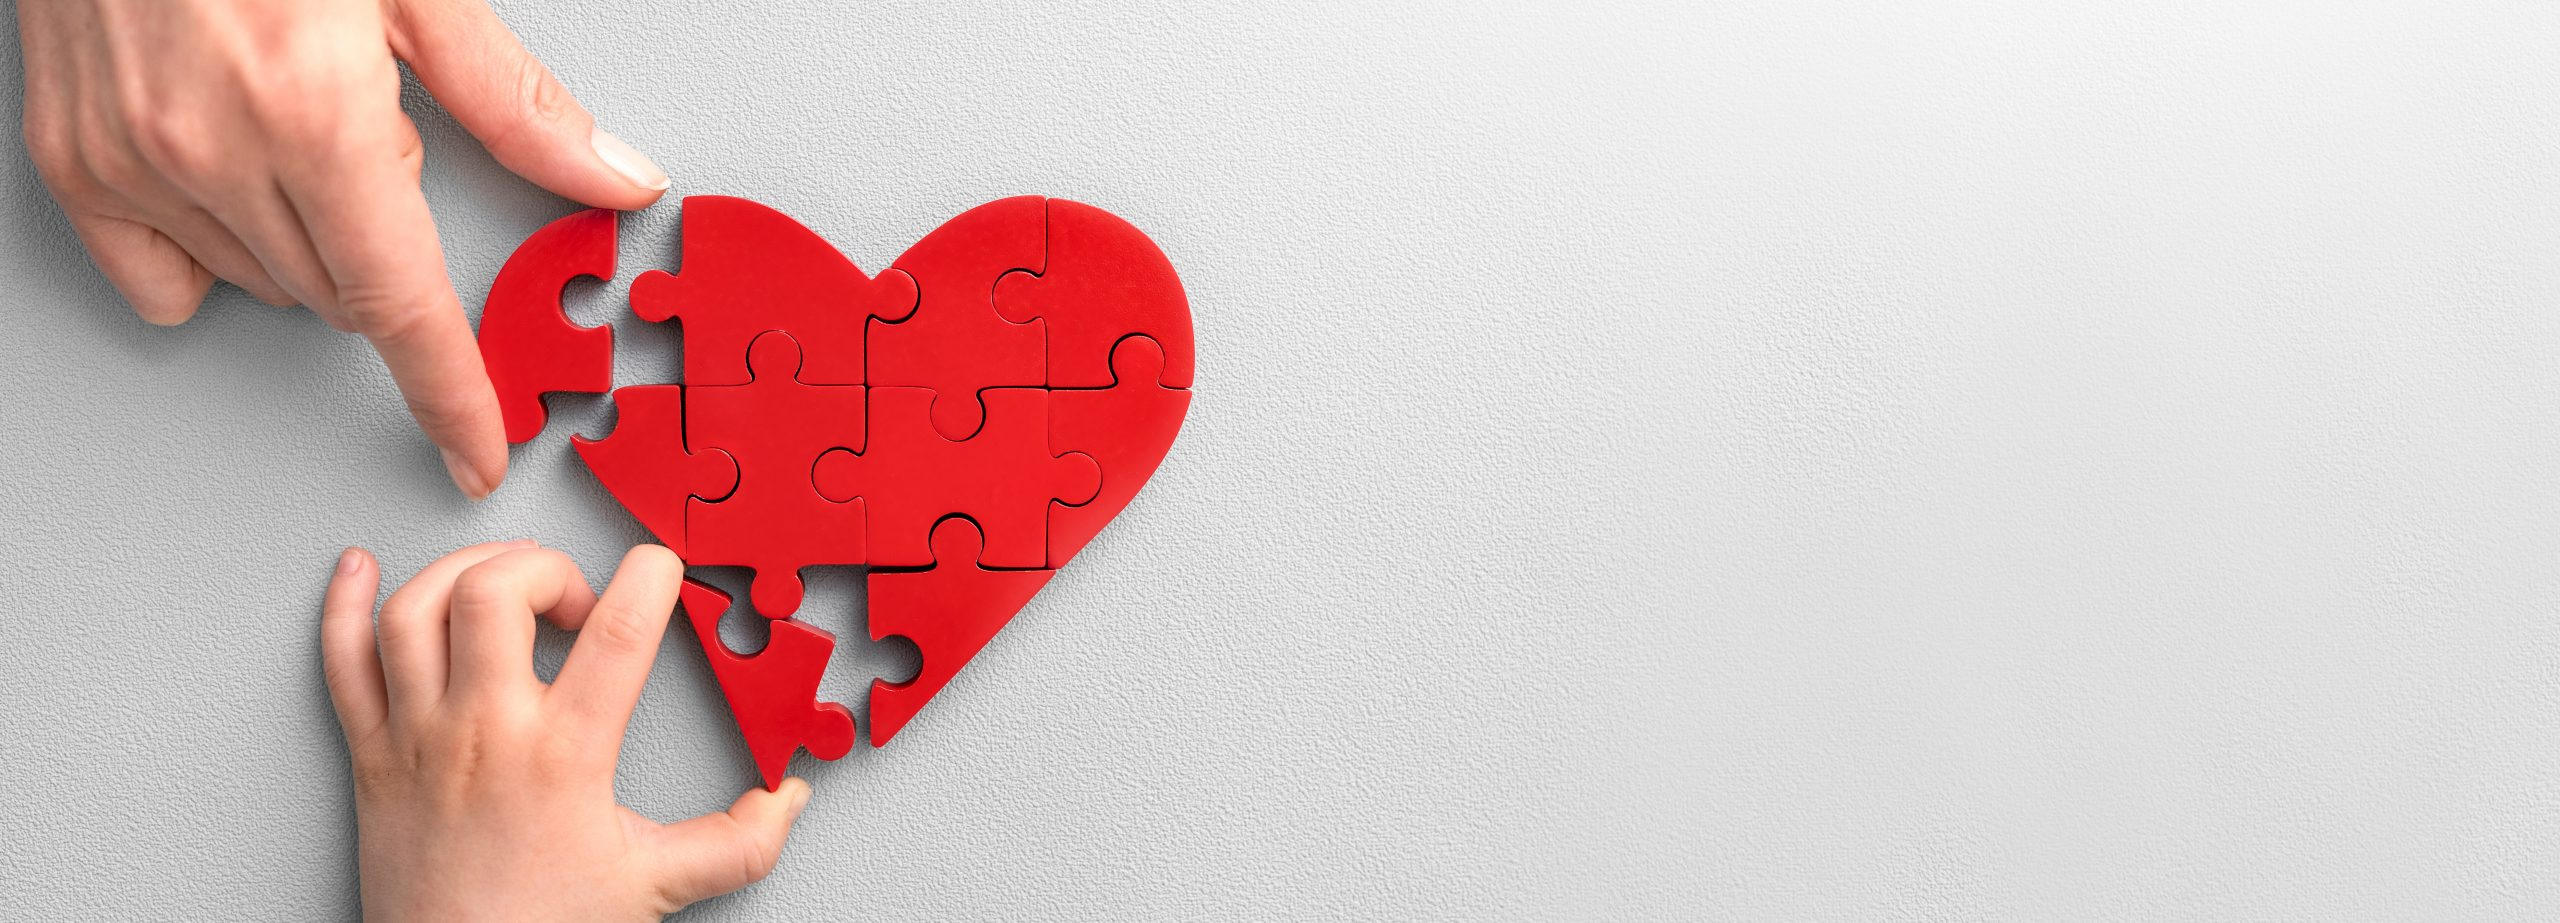 heart puzzle represents concept of charitable giving